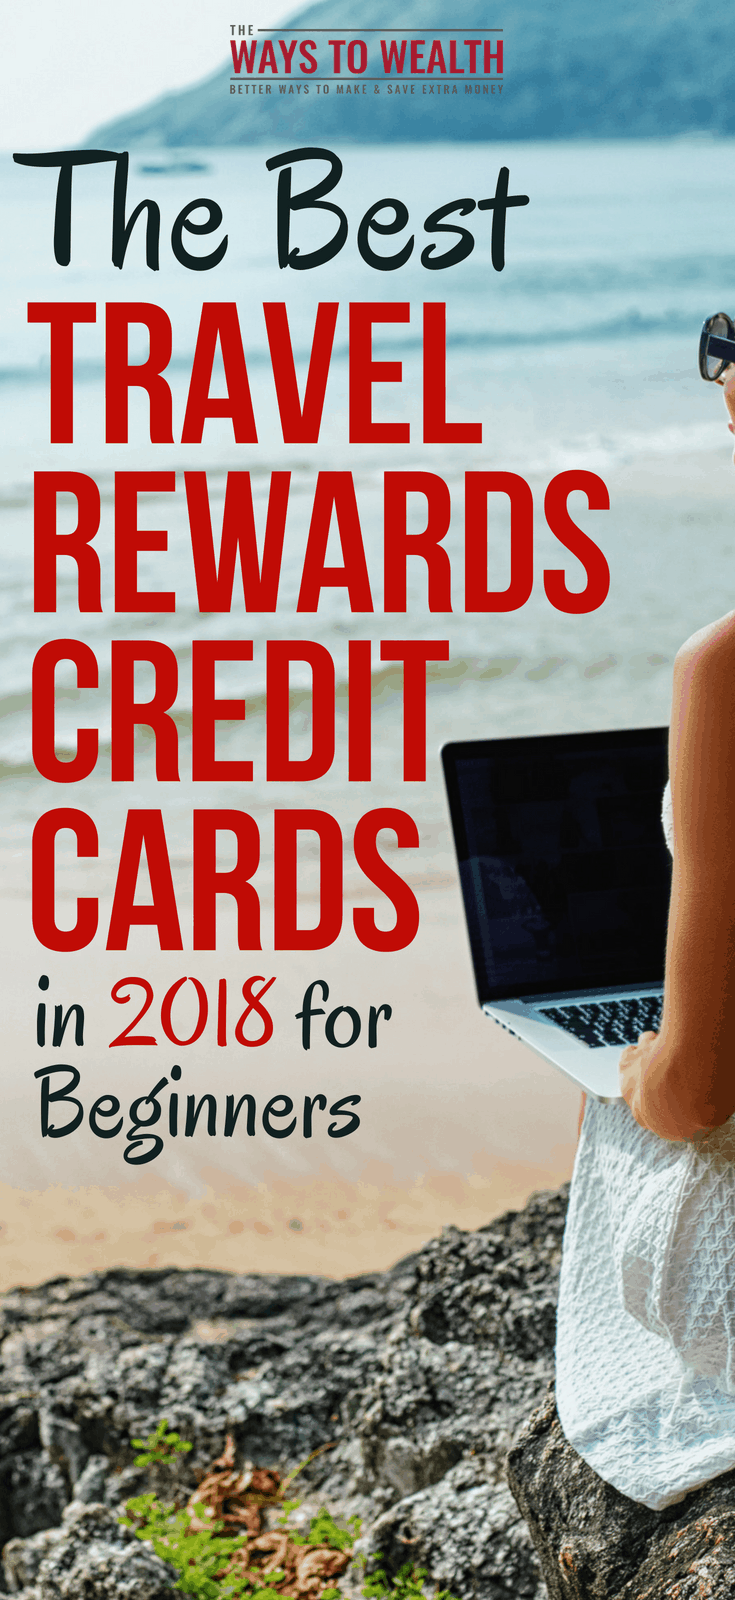 The Best Travel Rewards Credit Cards for Beginners (2018) best travel credit cards 2018 | airline miles credit card | best credit cards for travel for cheap flights | reward travel #thewaystowealth #travel #budgettravel #travelhacking